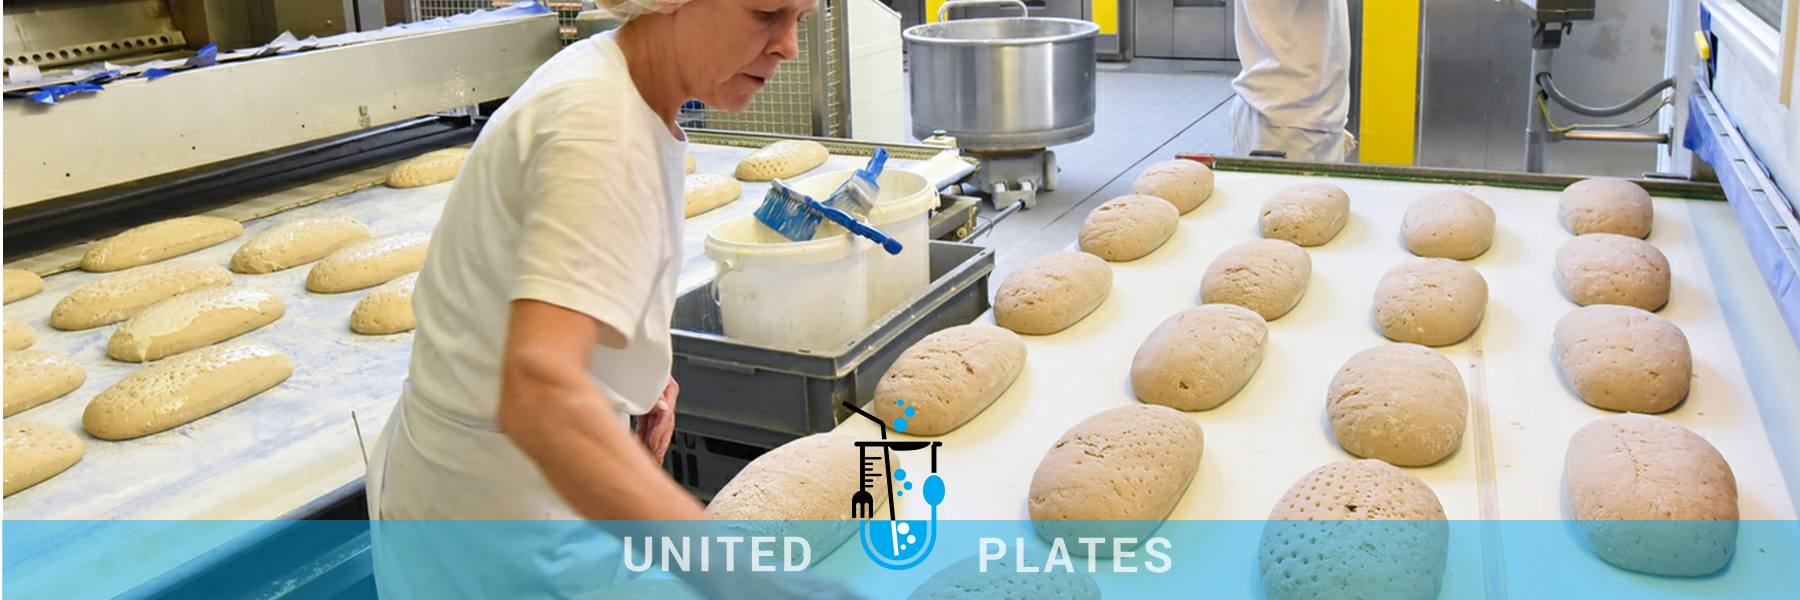 united plates bakery research development consultancy dublin